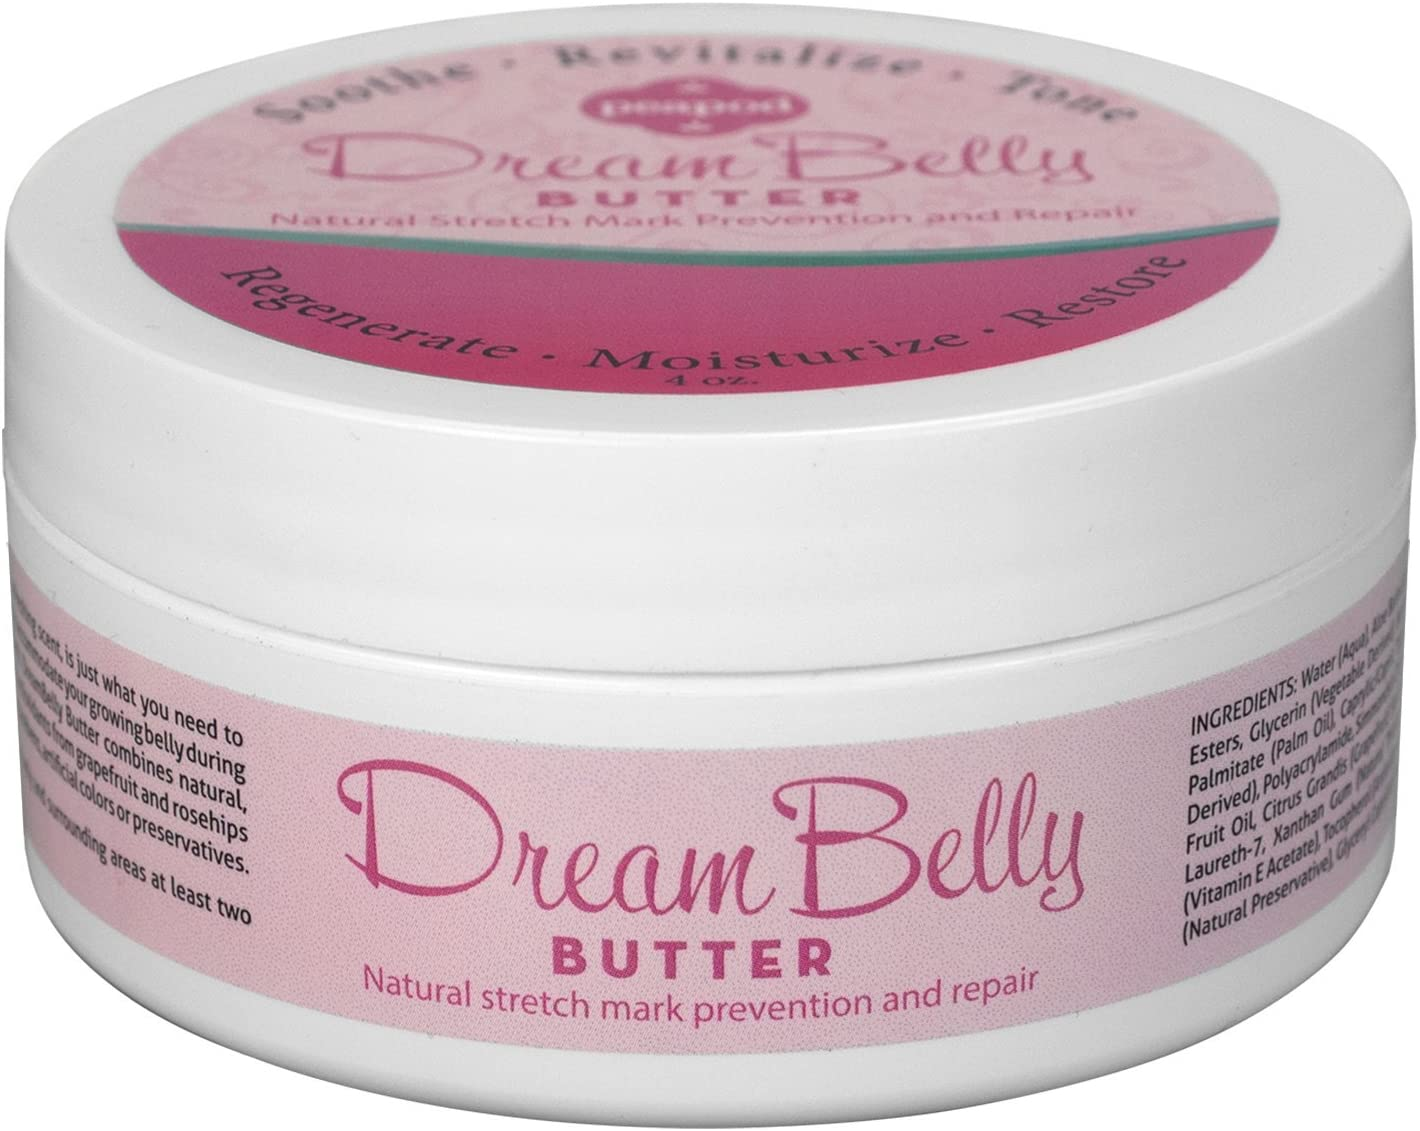 DreamBelly Butter Stretch Mark Cream, Lotion for Women's Tummy and Body to Soothe Skin and for Prevention of Pregnancy Stretch Marks and Scars, Contains Moisturizing Natural Butters and Oils